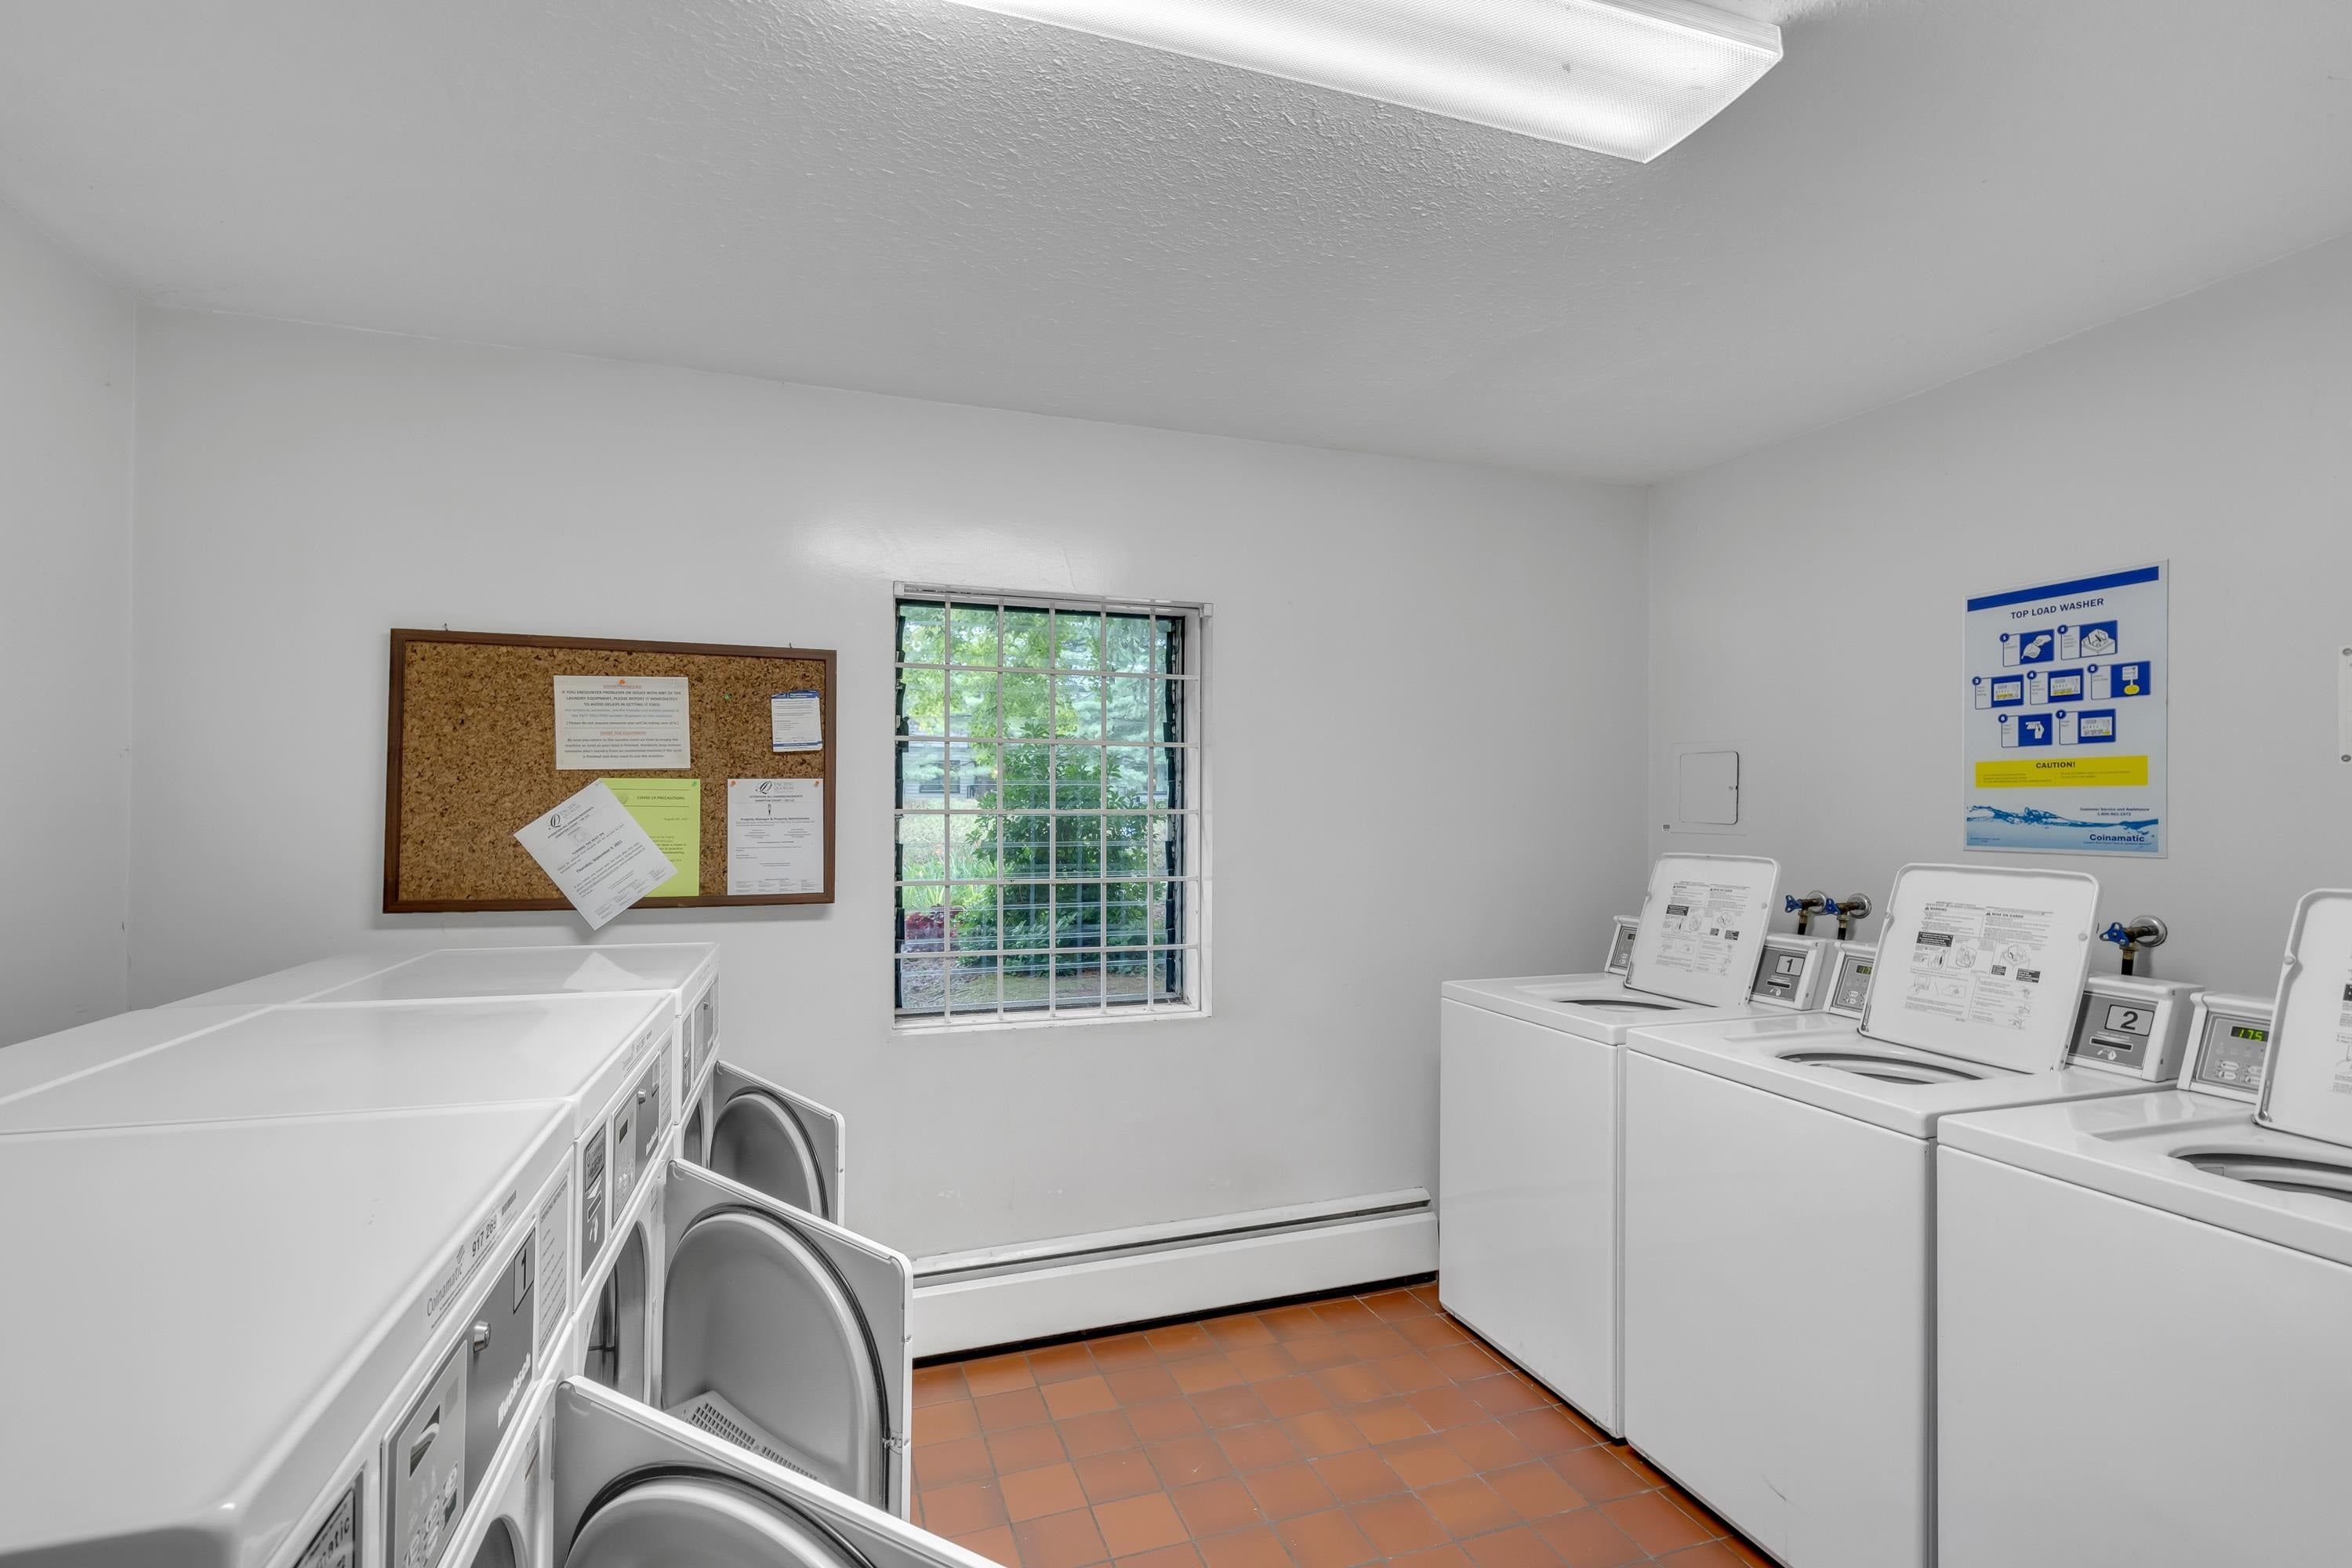 208 270 WEST 3RD STREET - Lower Lonsdale Apartment/Condo for sale, 1 Bedroom (R2615758) - #16